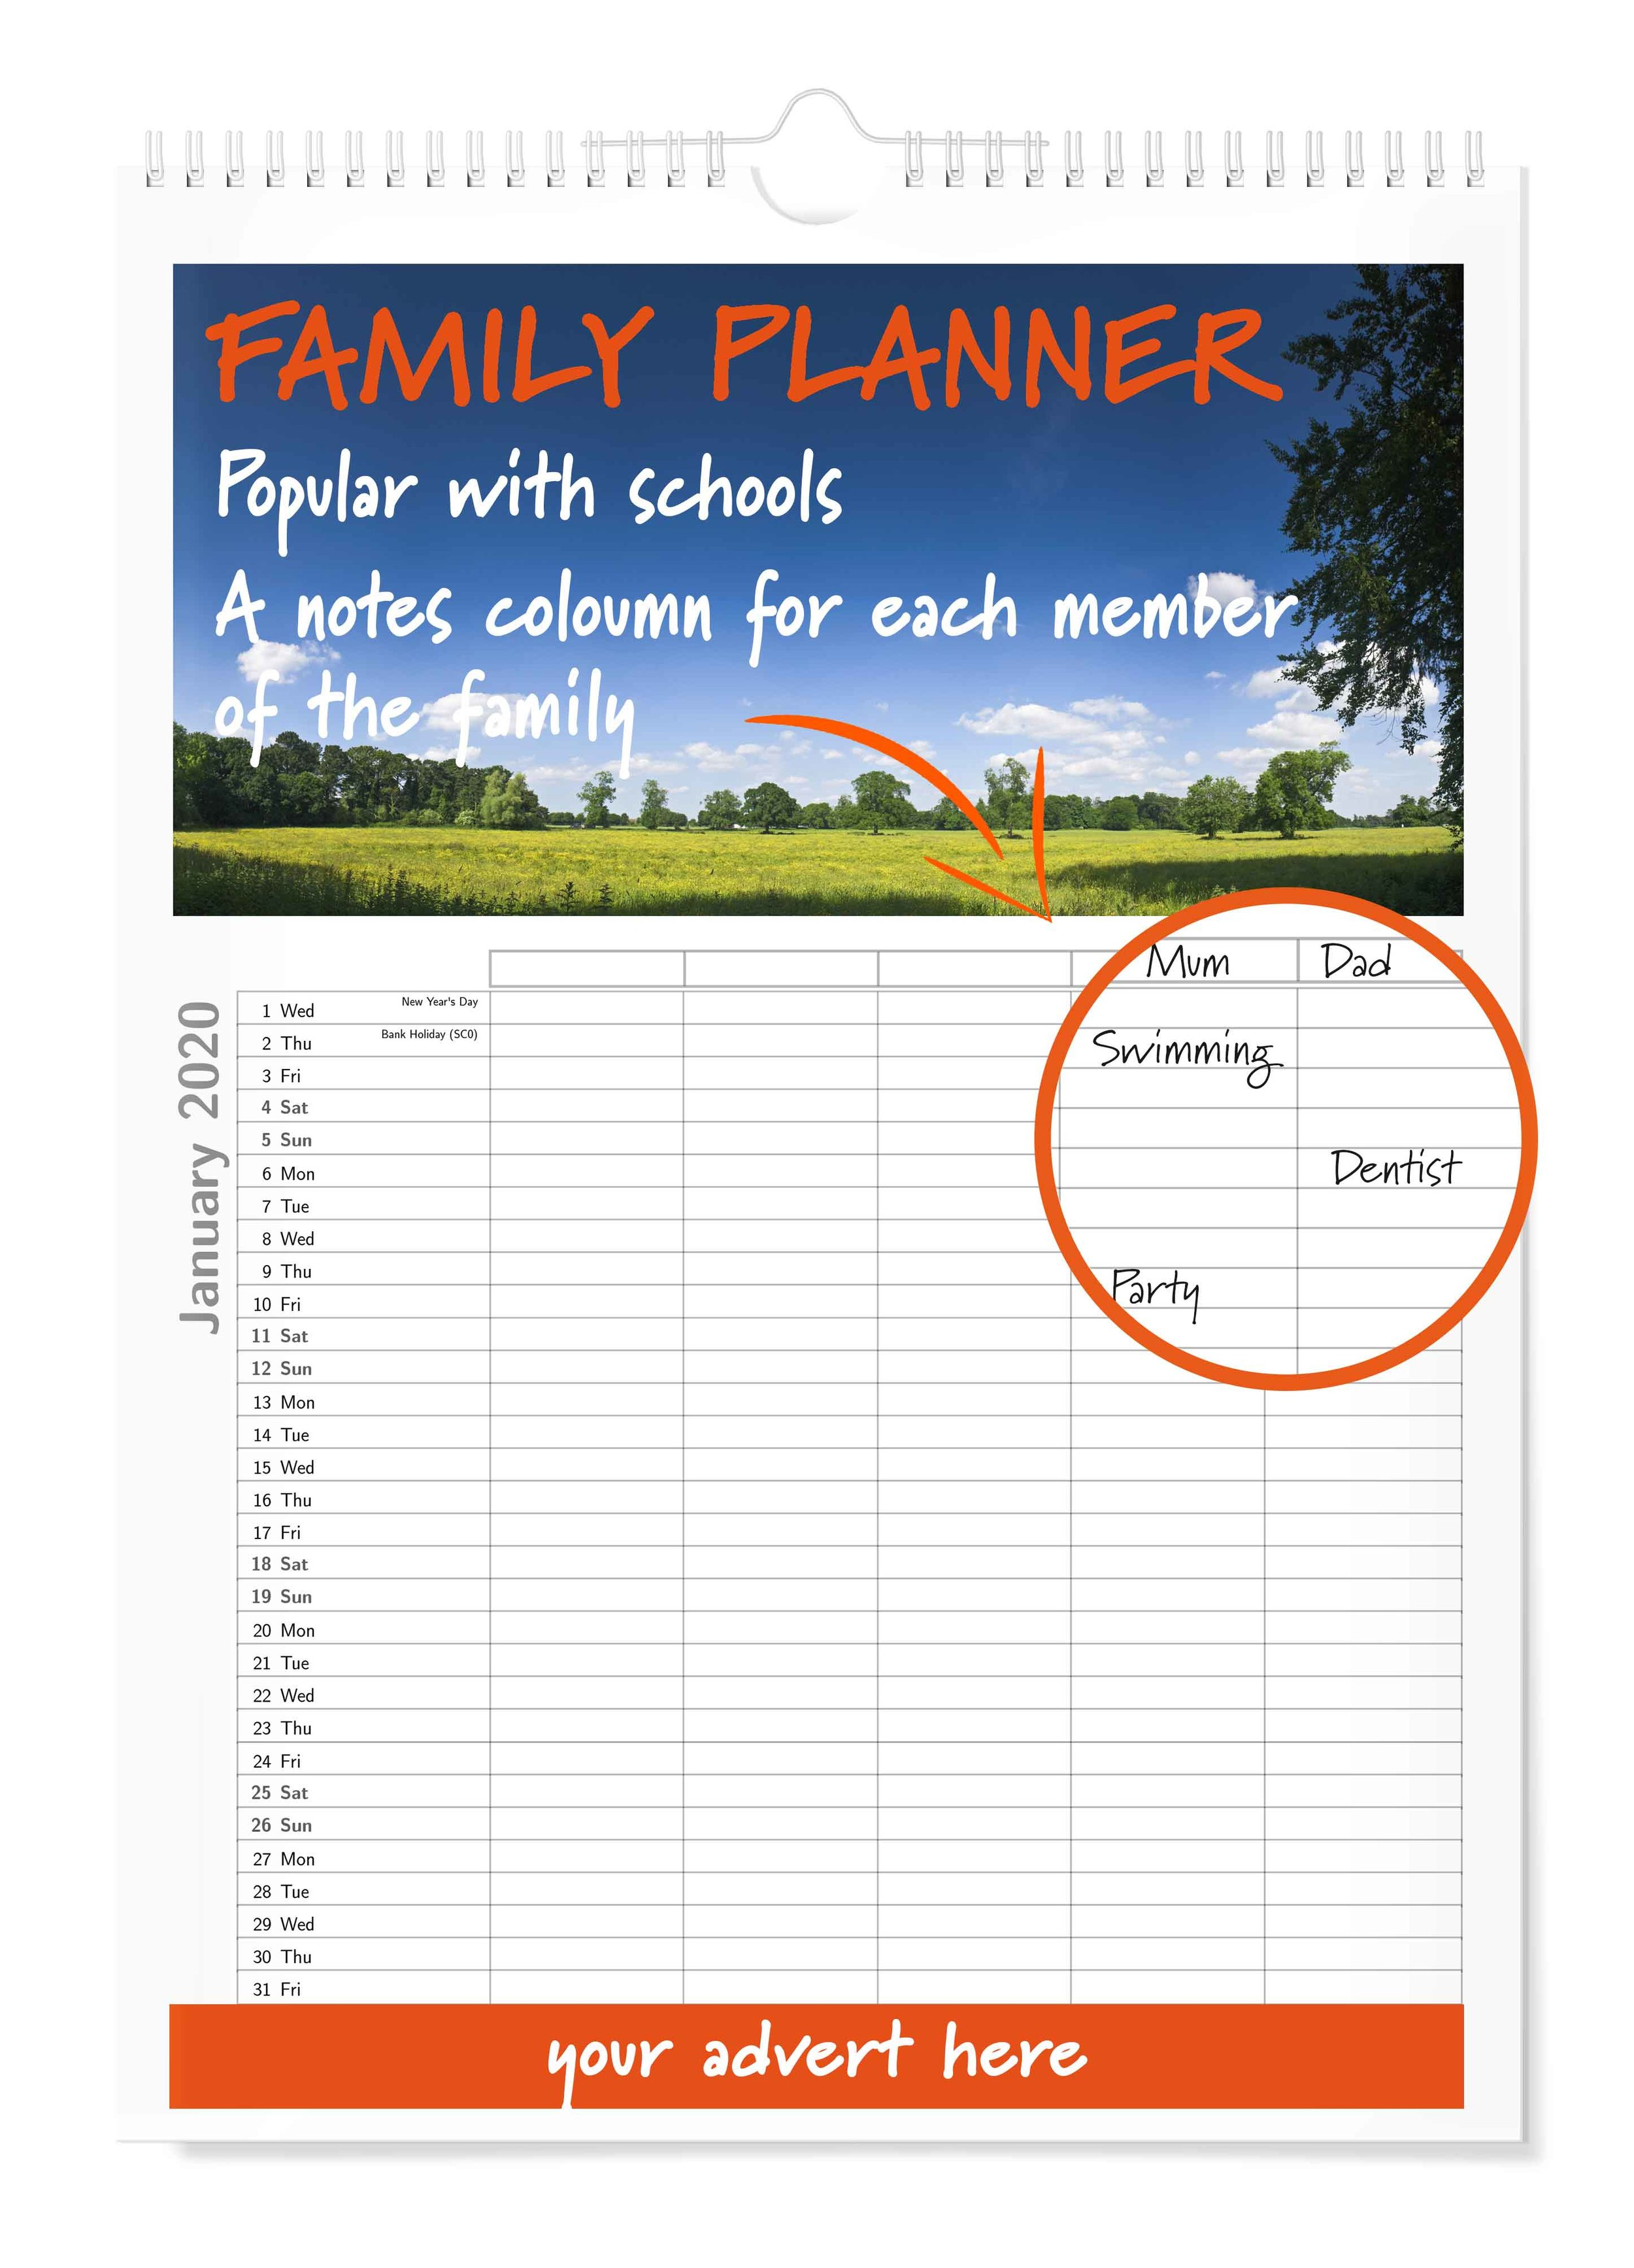 Template-close-up-Fam-Planner.jpg